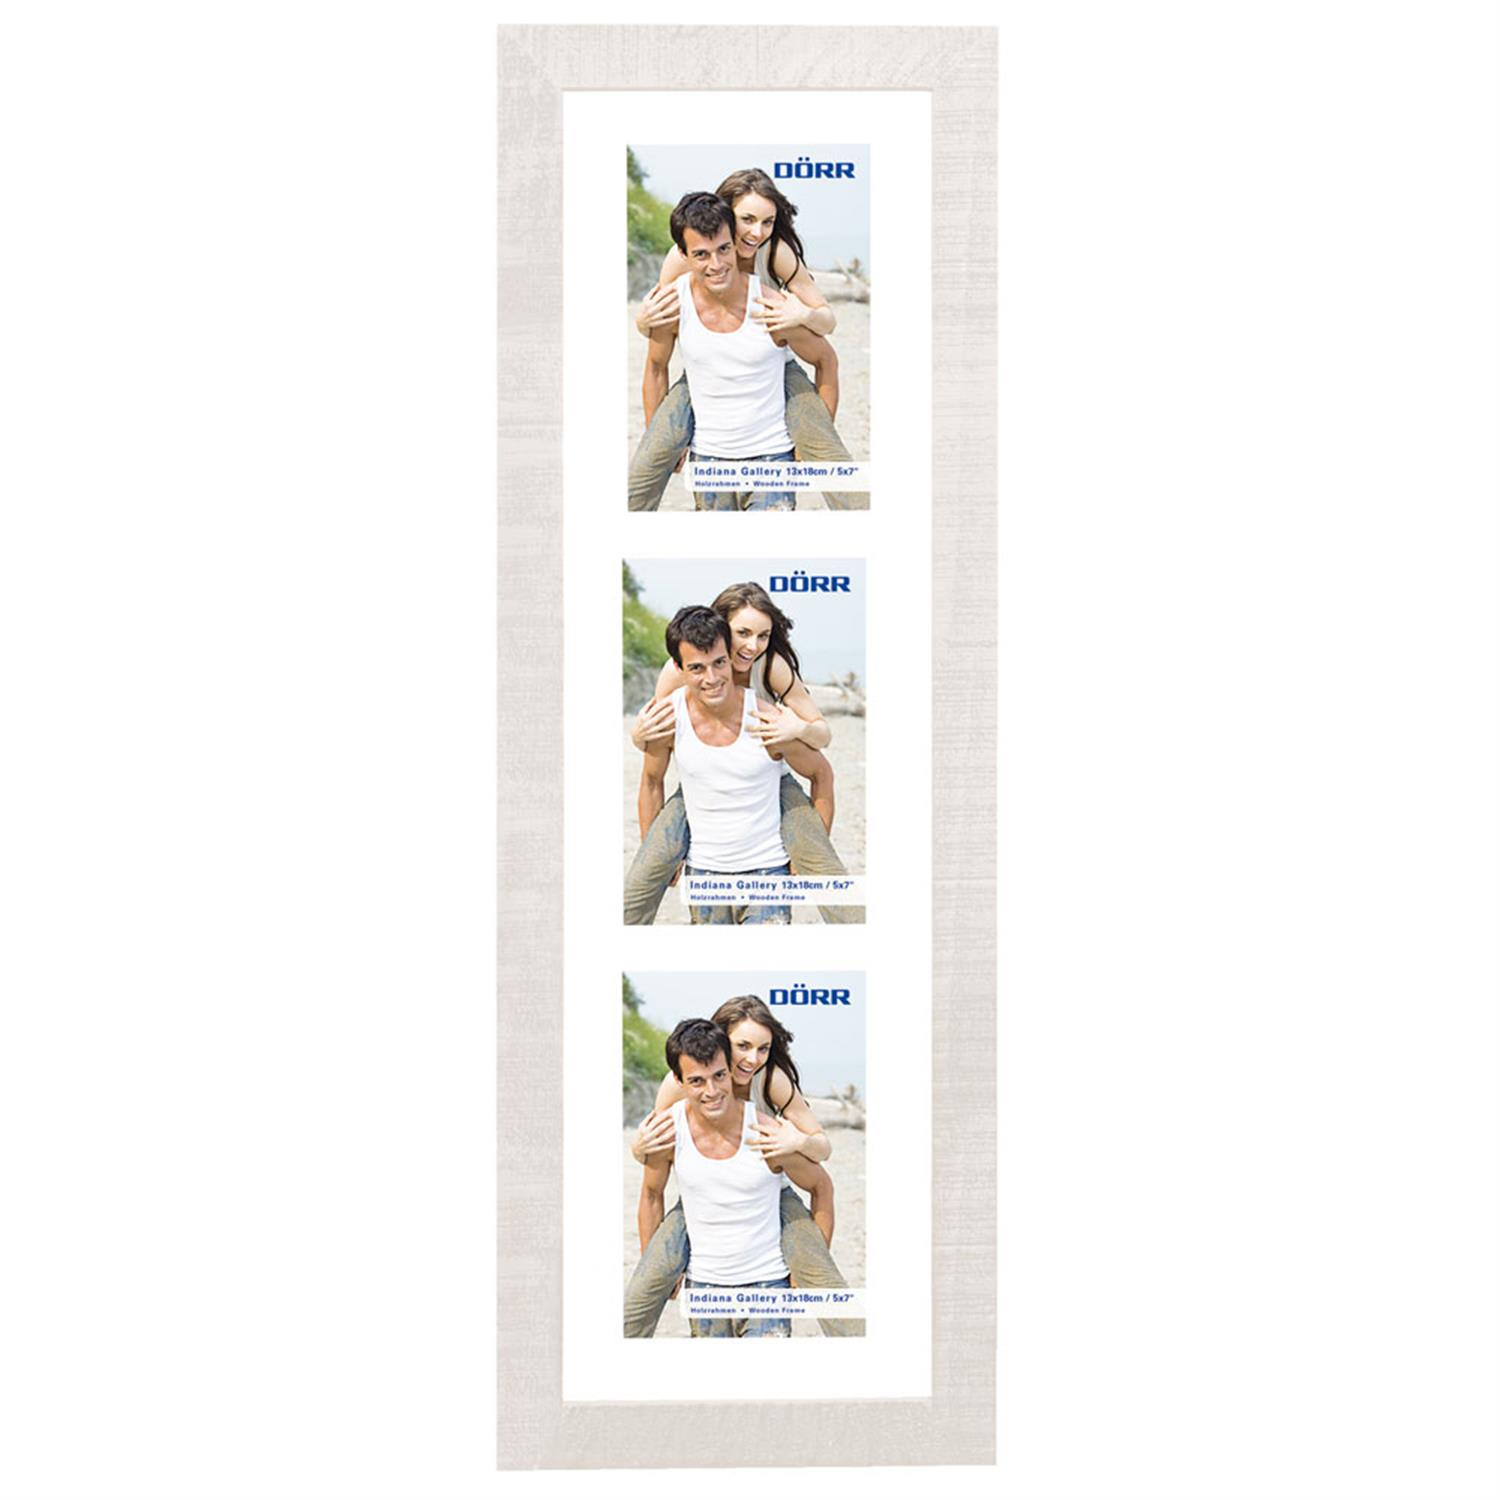 Dorr Indiana Vertical White Gallery Frame for 3 7x5 Photos